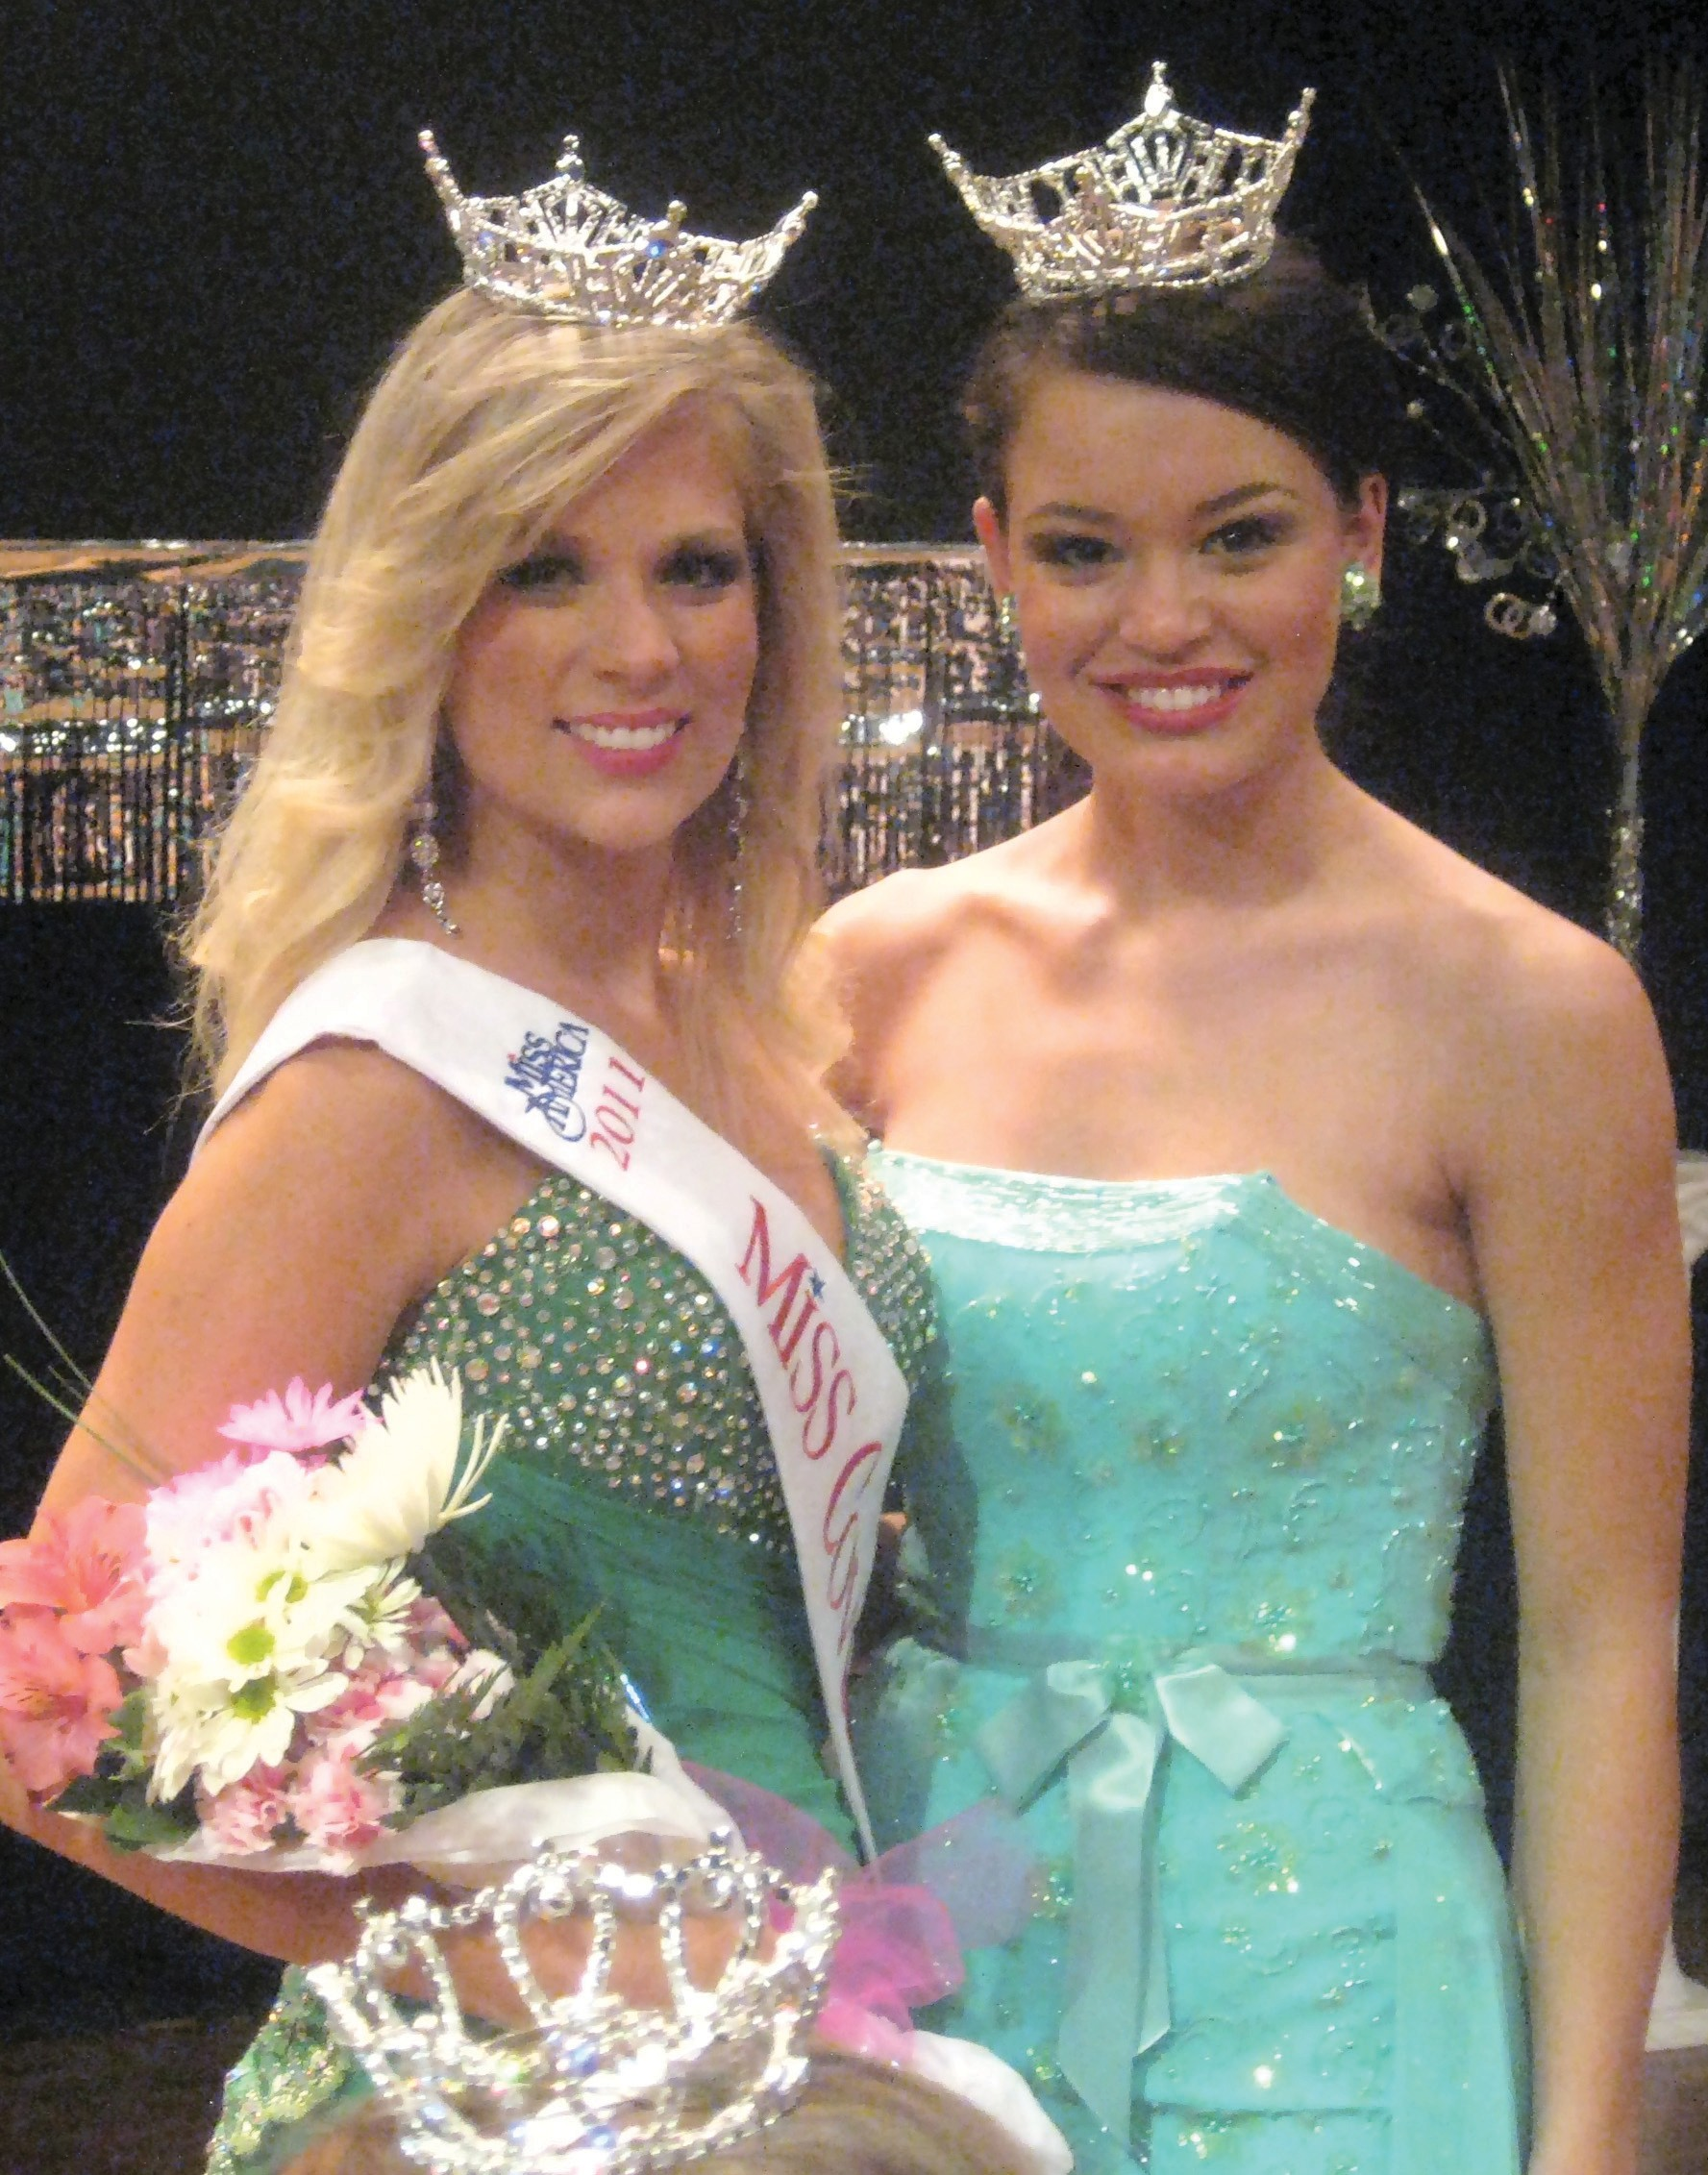 """Meghan Muncher (left), shown with Miss Alabama Ashley Davis, was crowned 2010 Miss Covered Bridge Sunday night, winning the title in a field of 20 contestants. She won the crown with a strong ballet en pointe performance to """"The Medallion Calls"""" and an impressive platform called """"My Arts Kids,"""" a program to provide fine arts education to elementary school students who, because of public school budget cutbacks, don't have access to fine arts programs. The program, incorporating music, dance, visual arts, broadway musicals, and drama, is financed through Muncher's personal fundraising and pursuit of grants from both private sources and public educational agencies. Muncher, 21, of Jasper, is a senior majoring in dance at The University of Alabama. She was Miss Jefferson County of 2009, and will participate in the Miss Alabama Pageant for the fourth time in June of next year. She is the fifth Miss Covered Bridge, since the local pageant's birth as an official Miss Alabama Preliminary. The pageant, directed by Jayne Posey of Oneonta, was recognized as the outstanding preliminary pageant for 2010. Muncher will make her first public appearance as Miss Covered Bridge during Covered Bridge Festival ceremonies in downtown Oneonta Saturday morning. – Ron Gholson"""